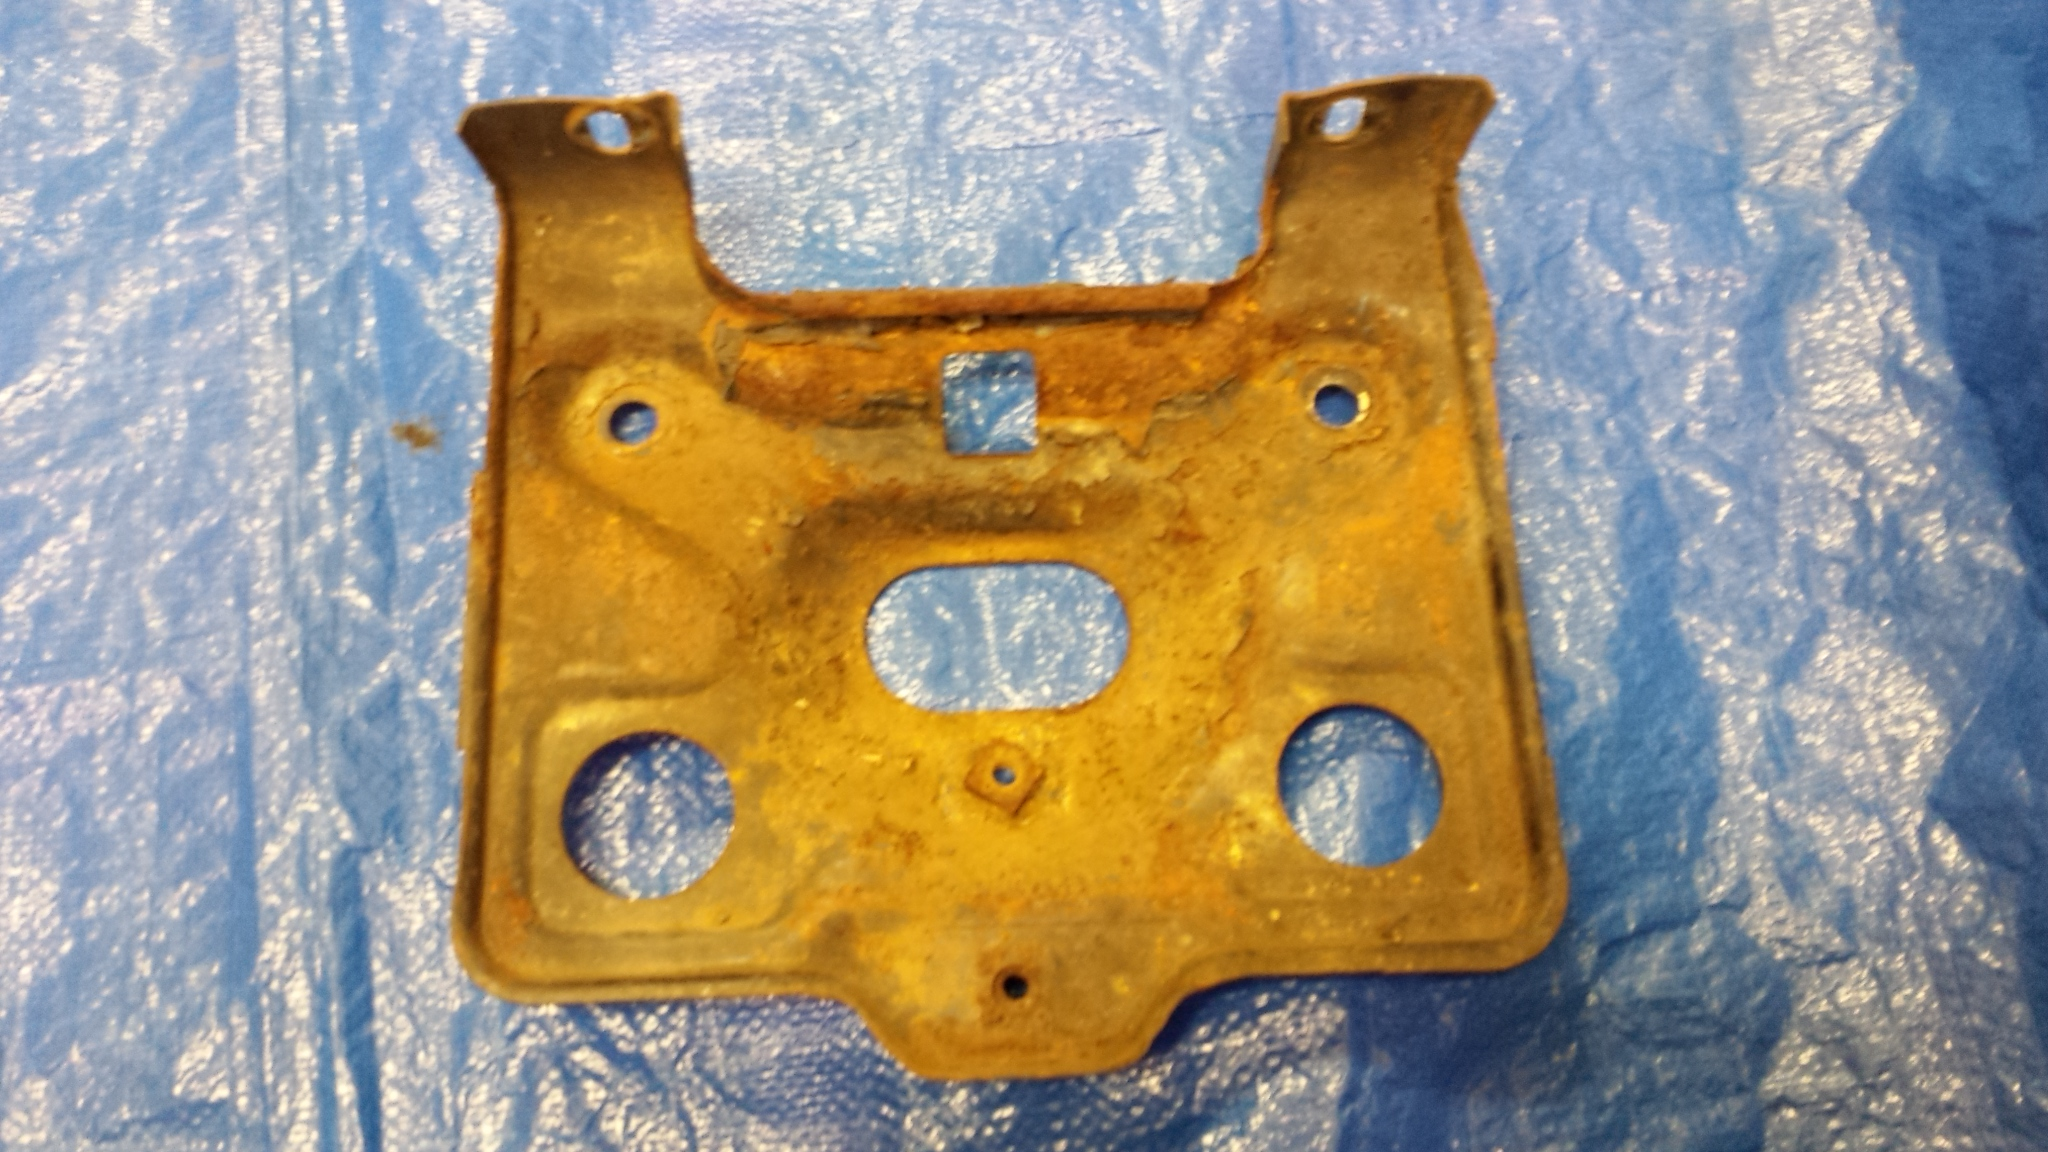 77-85 Chevy Caprice Impala Battery Tray